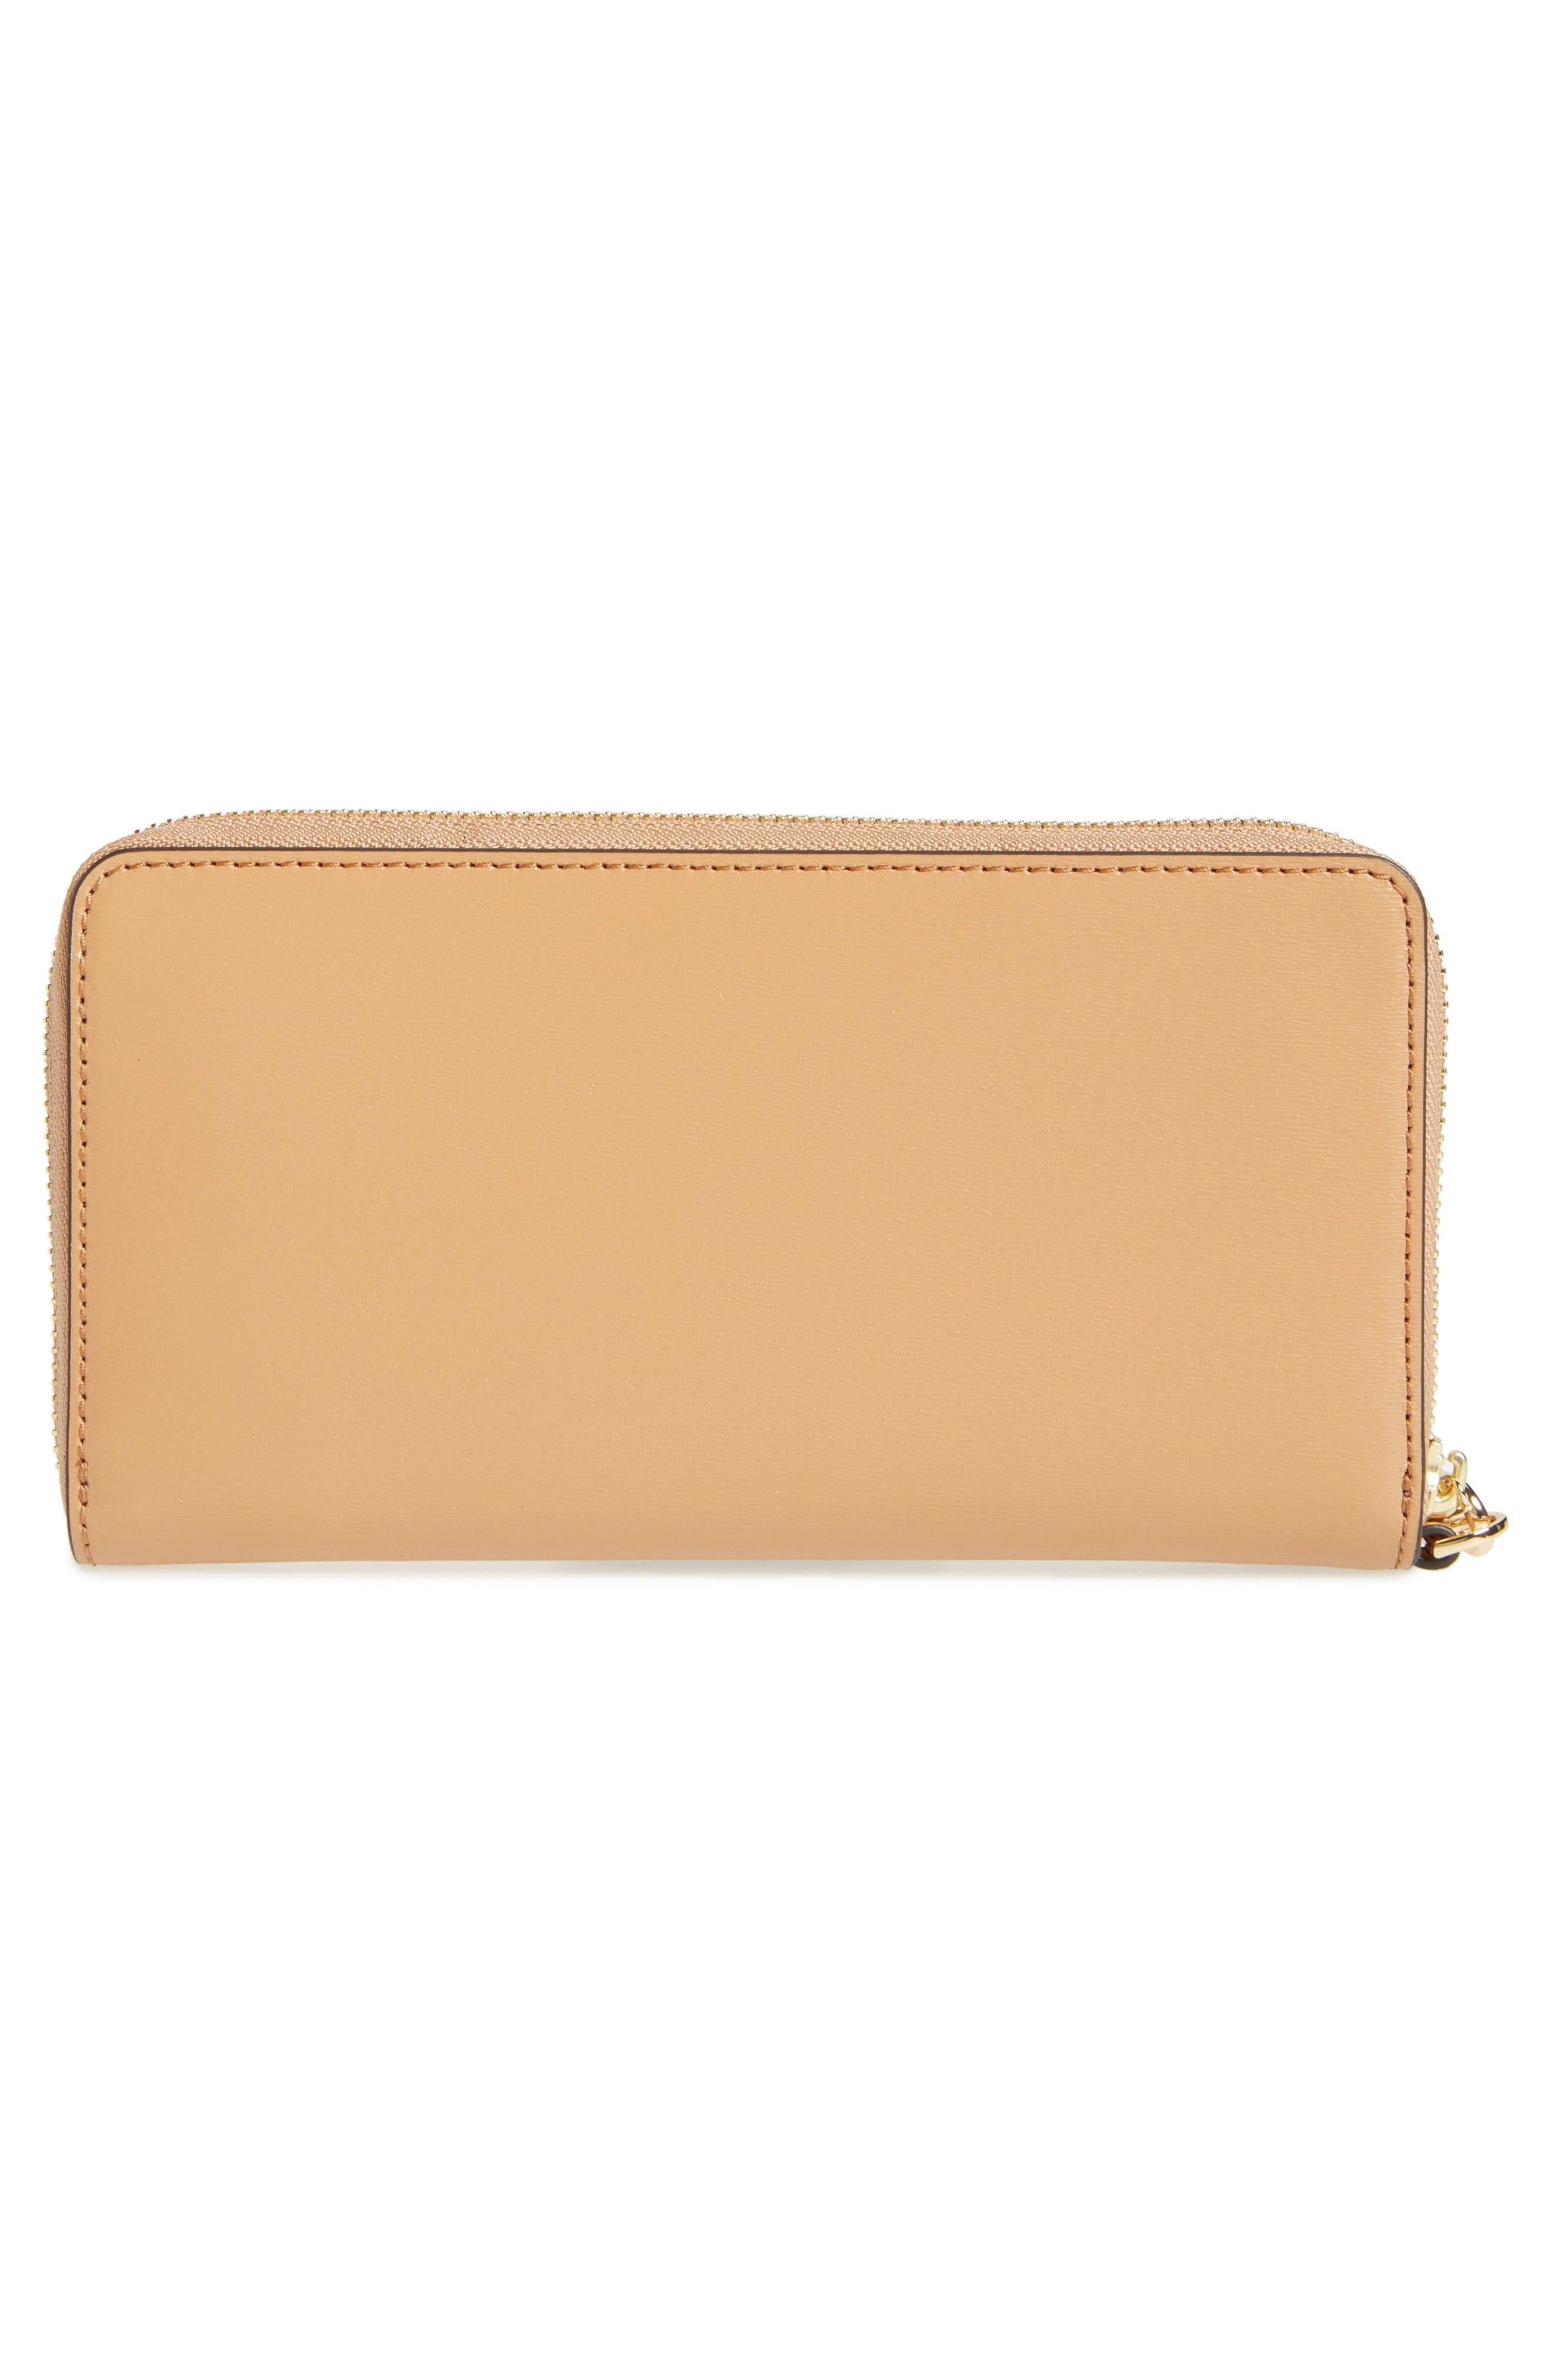 Parker Leather Continental Wallet,                             Alternate thumbnail 4, color,                             Cardamom